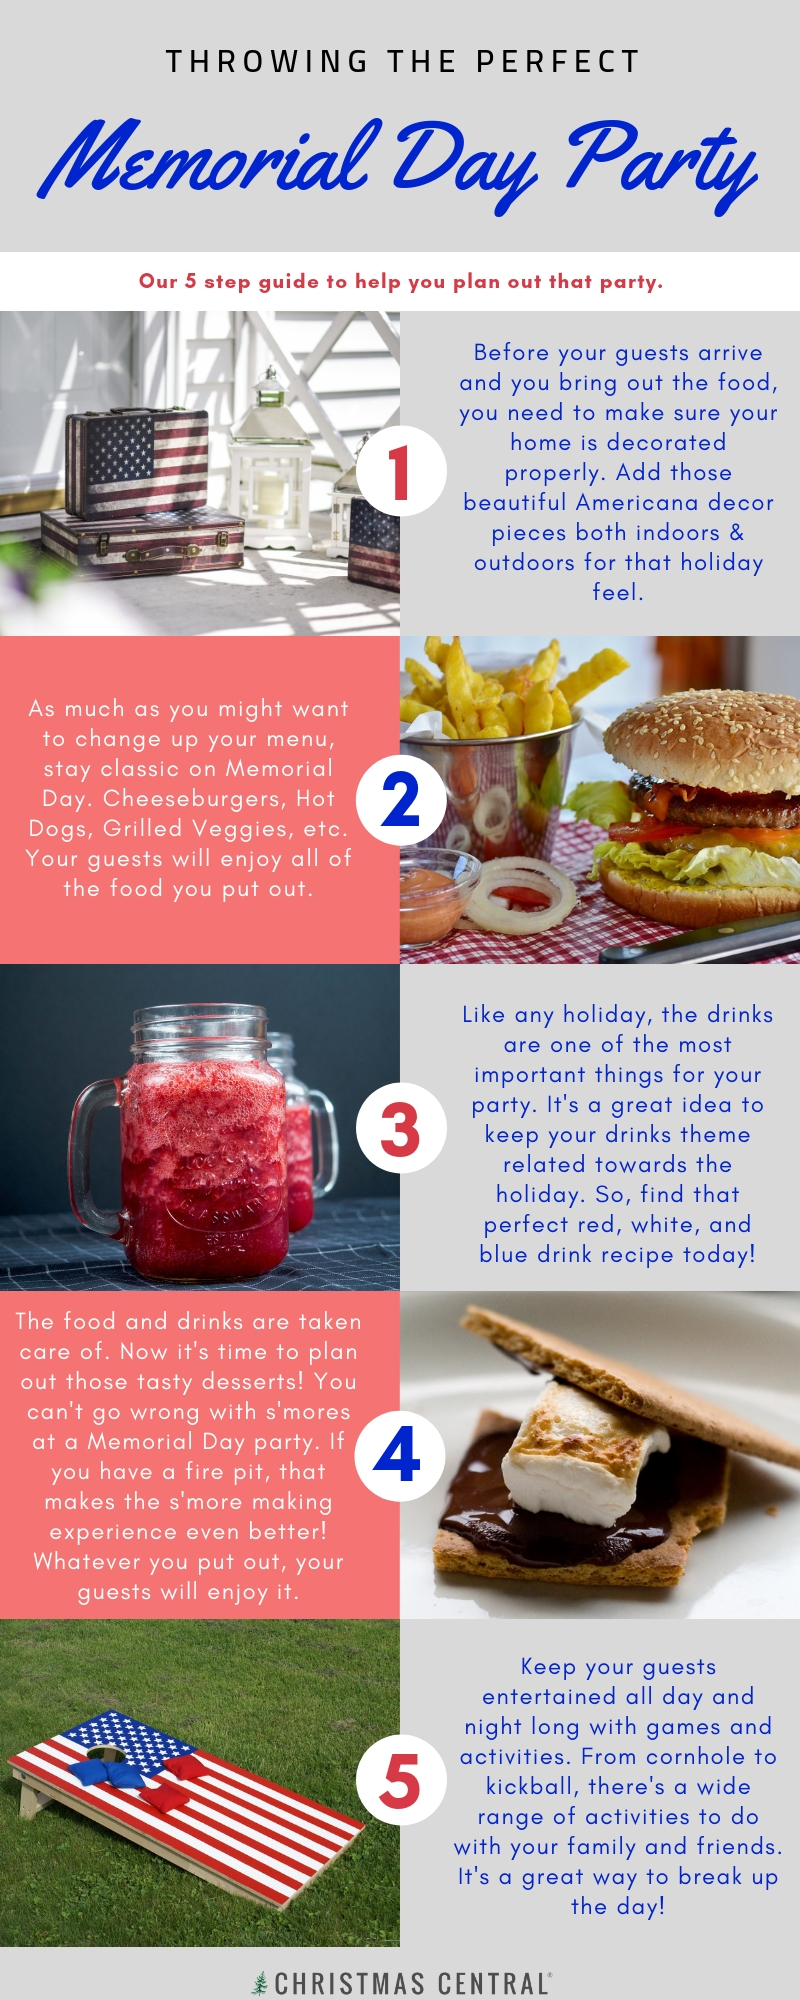 Memorial Day Party Guide